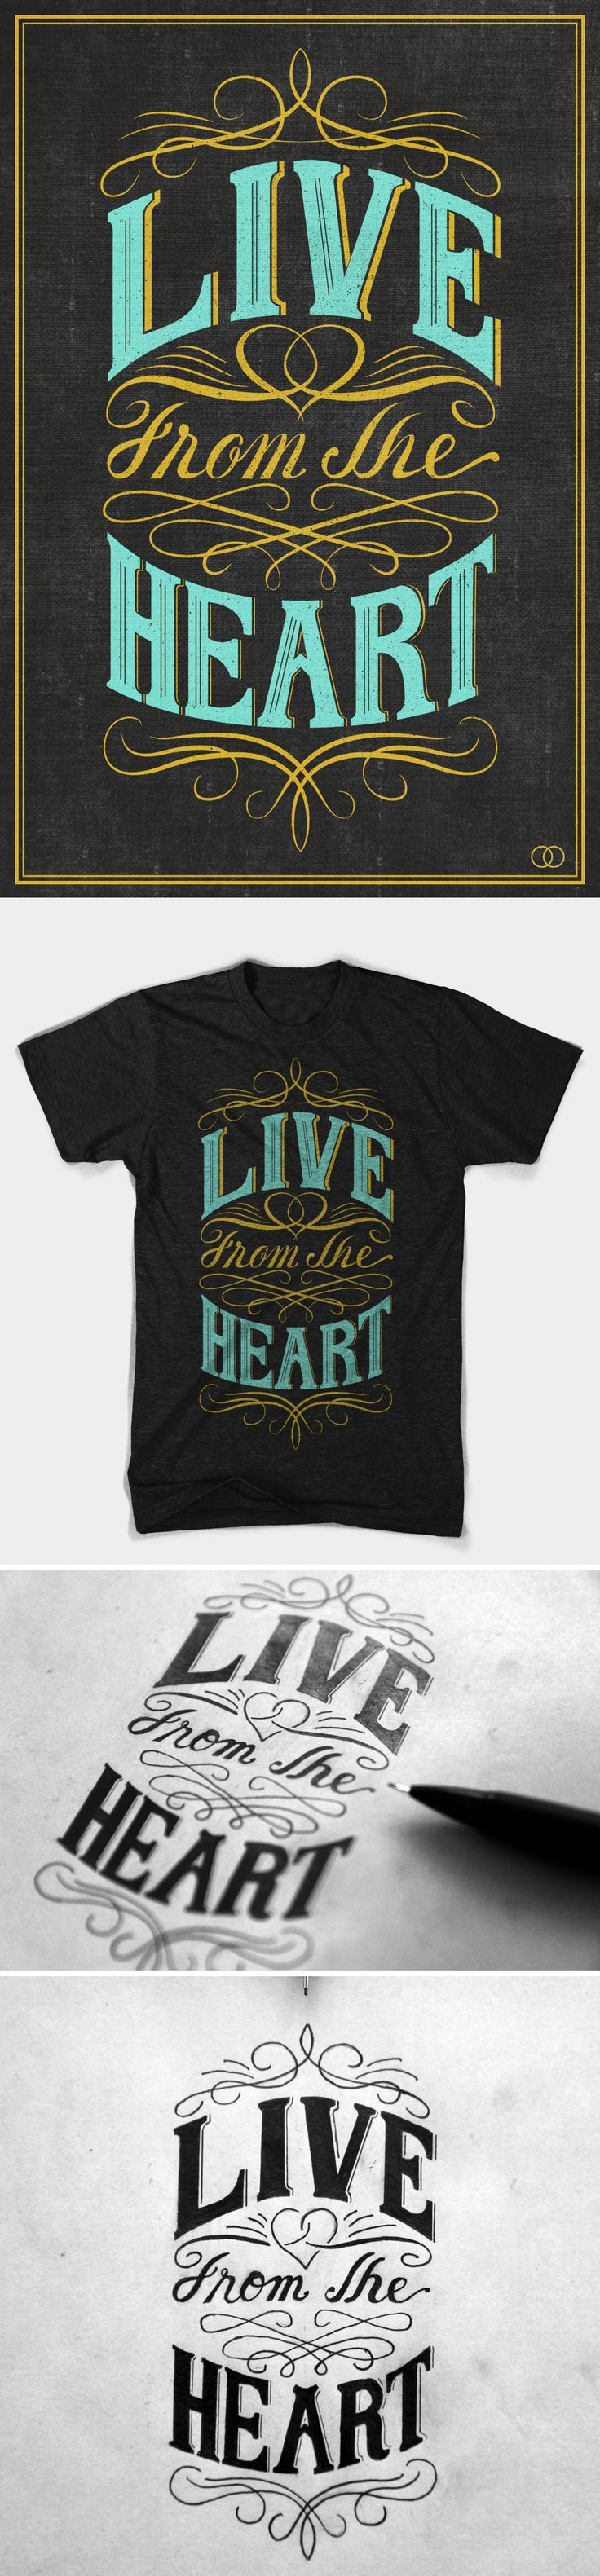 Live From The Heart /// Nicholas D'Amico